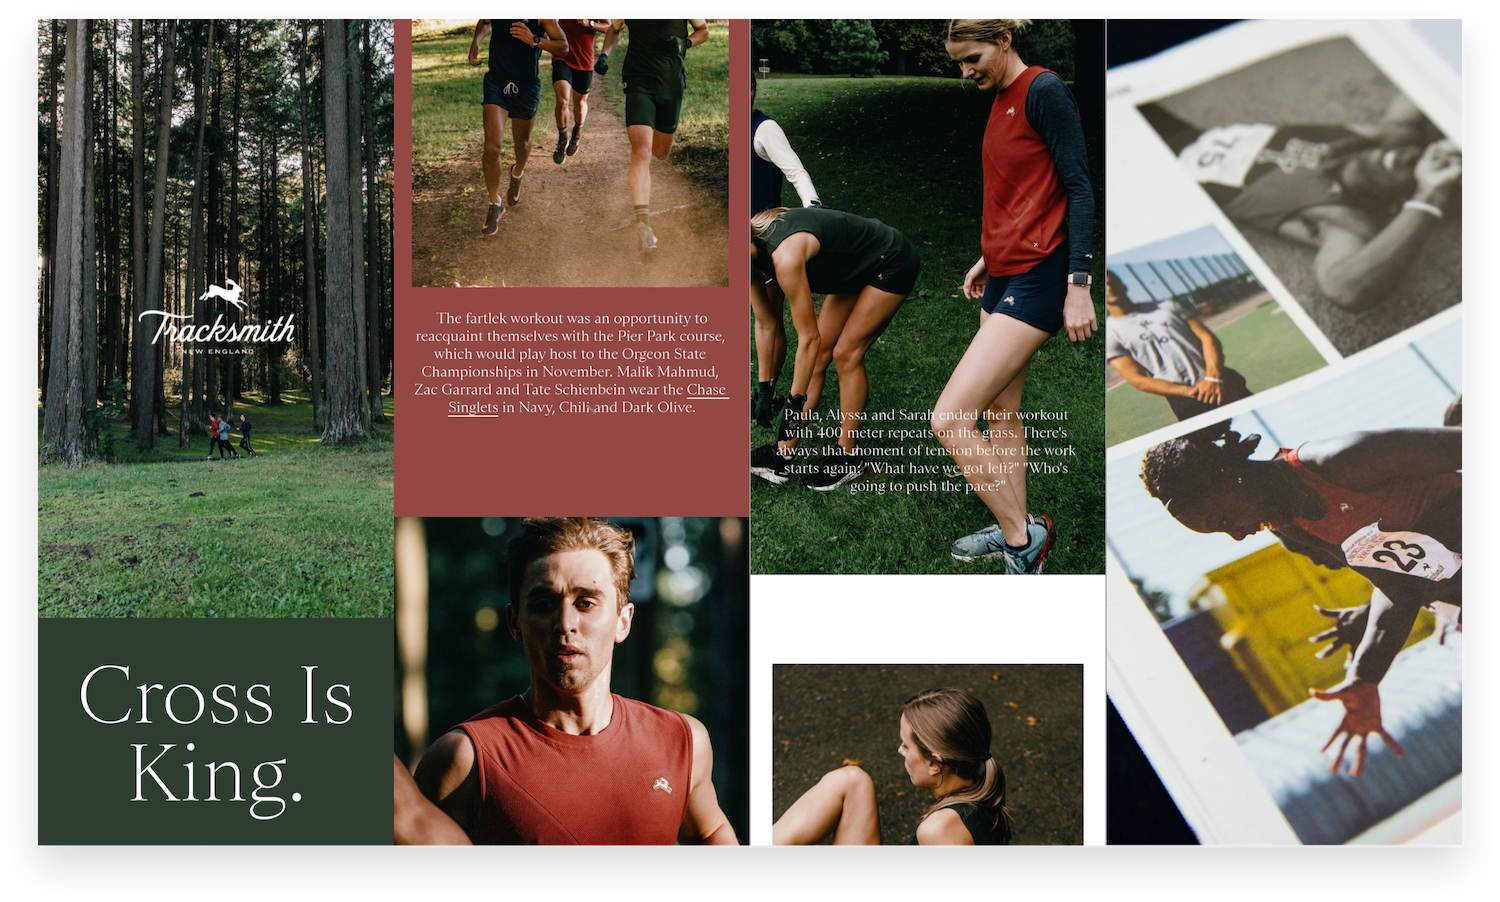 Tracksmith Content Collage of Product Launches, Blogs, and Print Magazine